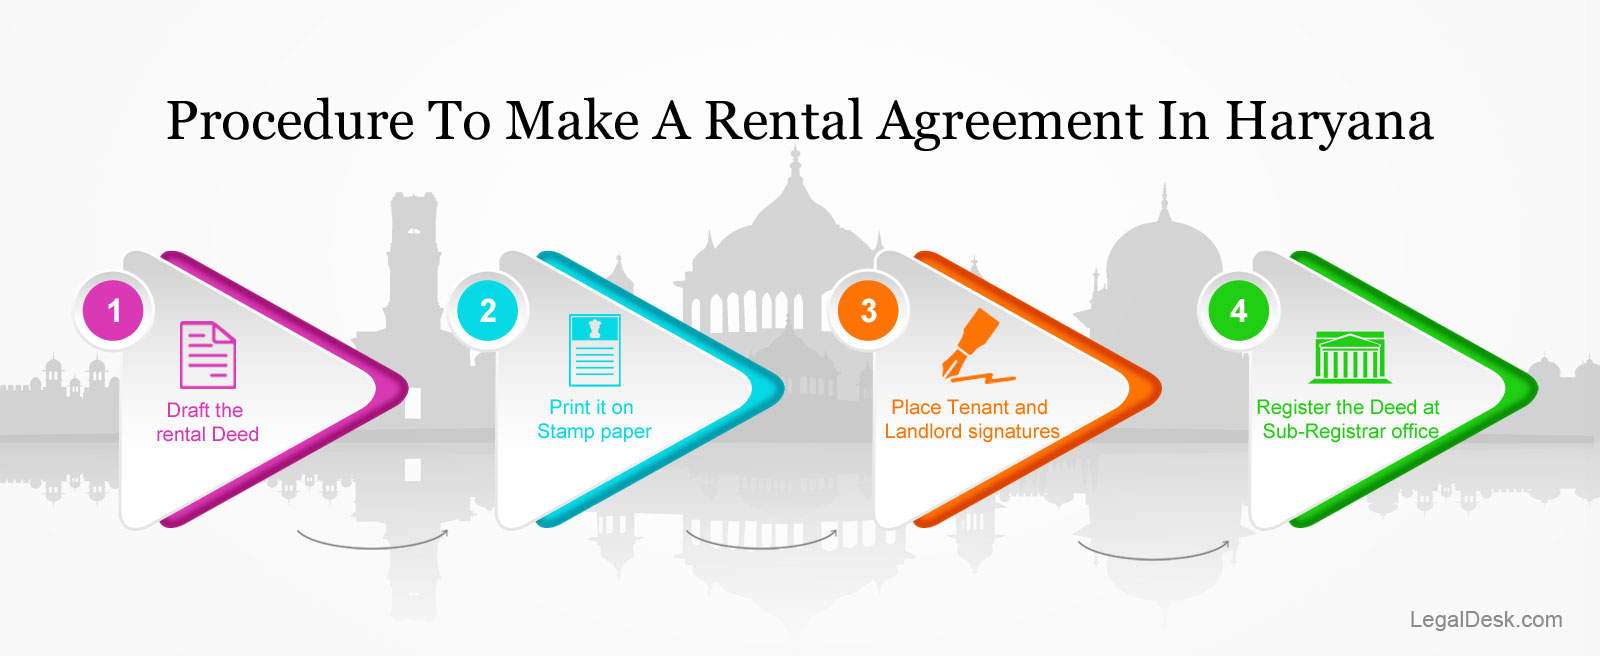 Procedure-for-rental-agreement-in-haryana